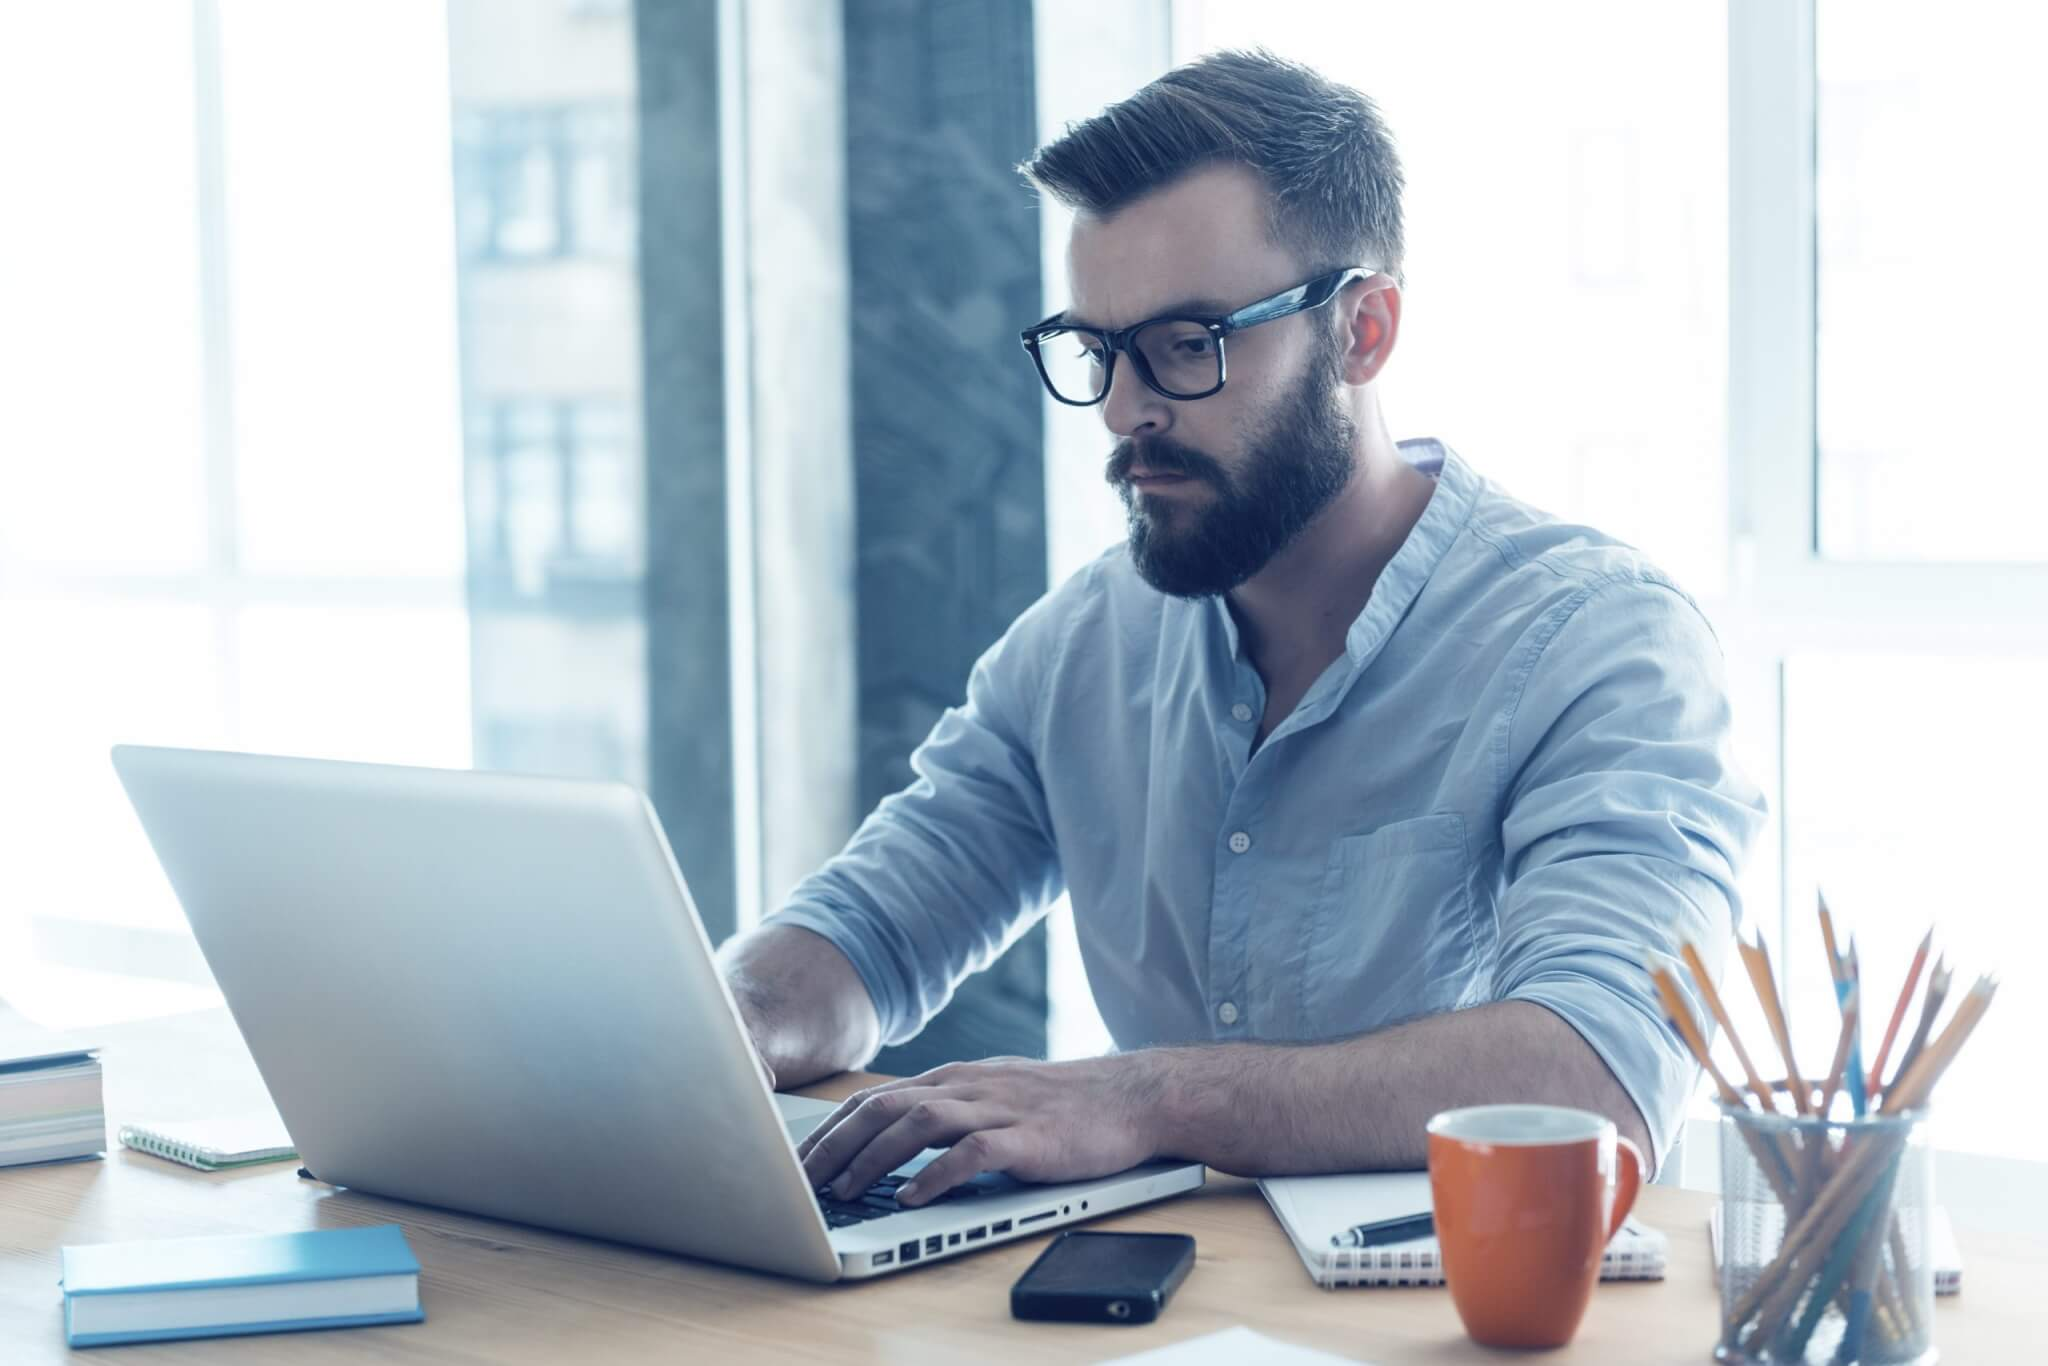 Employee working on laptop, representing communication with research firms